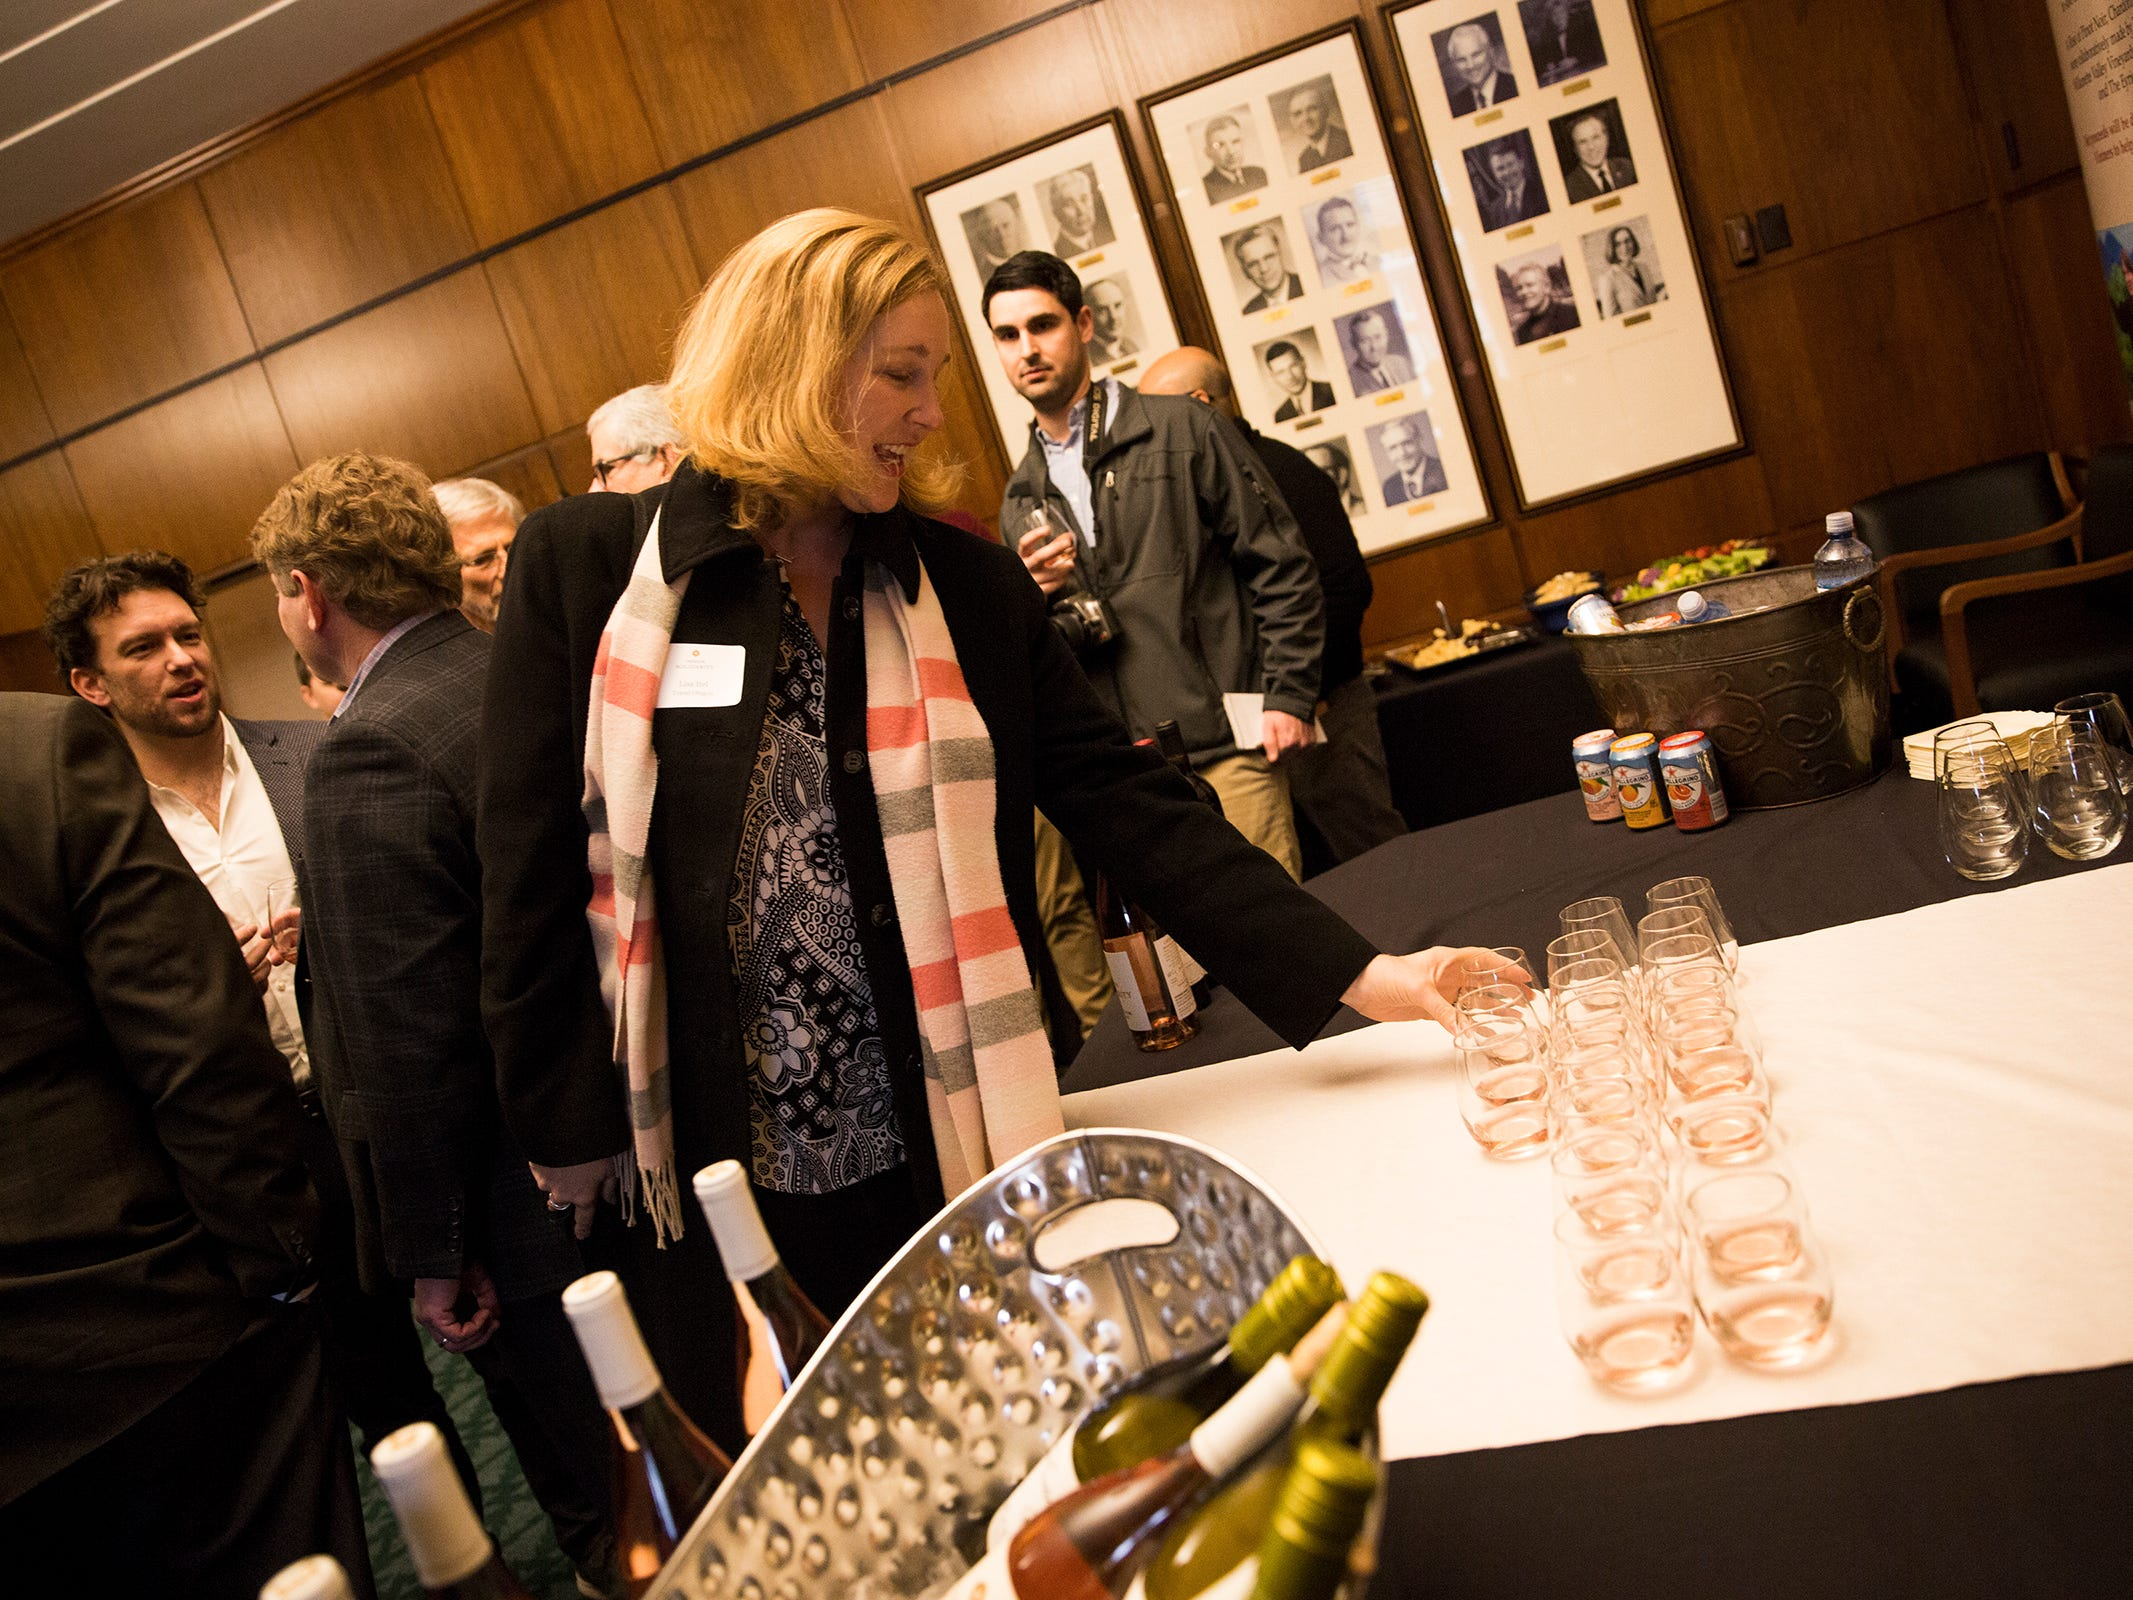 Lisa Itel, Director of Strategic Partnerships at Travel Oregon, grabs a glass at a release party for the Oregon Solidarity Rose of Pinot Noir in the Governor's ceremonial office at the Oregon State Capitol in Salem on Tuesday, March 5, 2019.